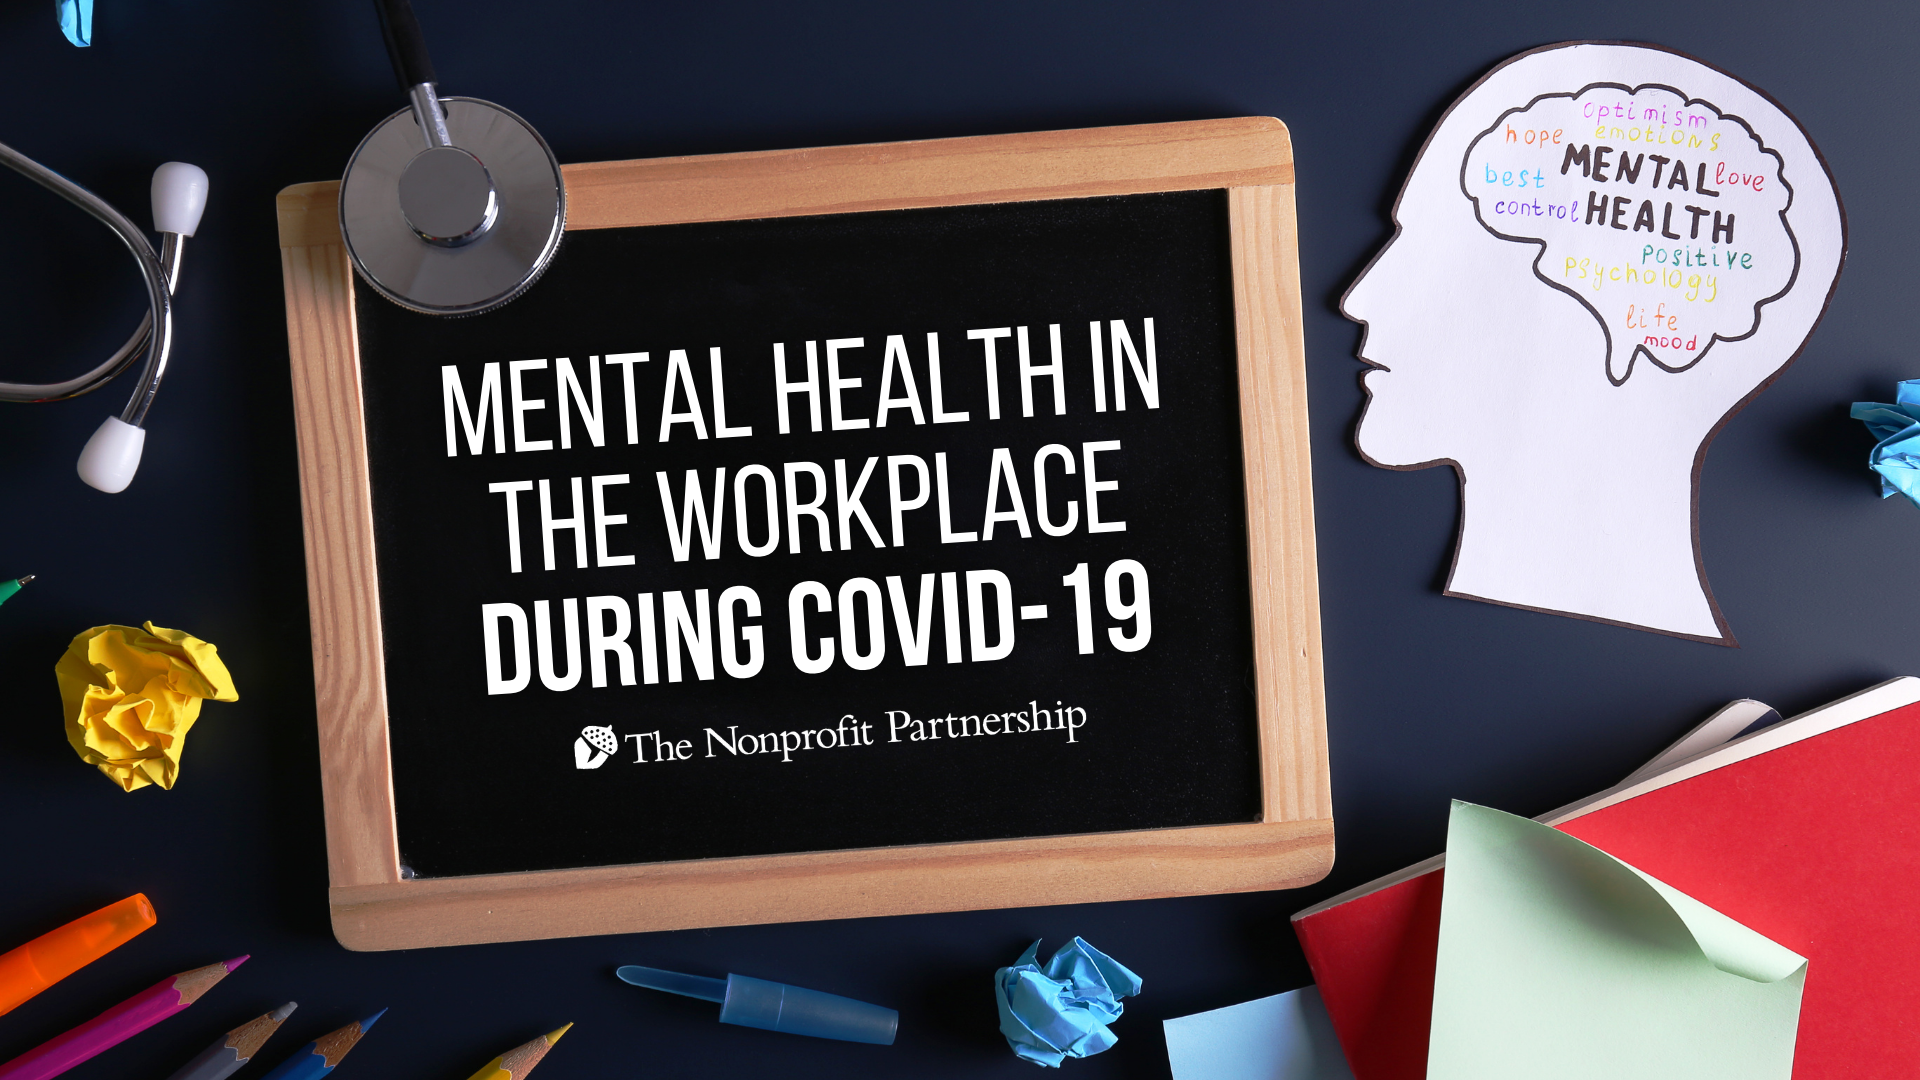 [Zoom Meeting] Mental Health in the Workplace During COVID-19